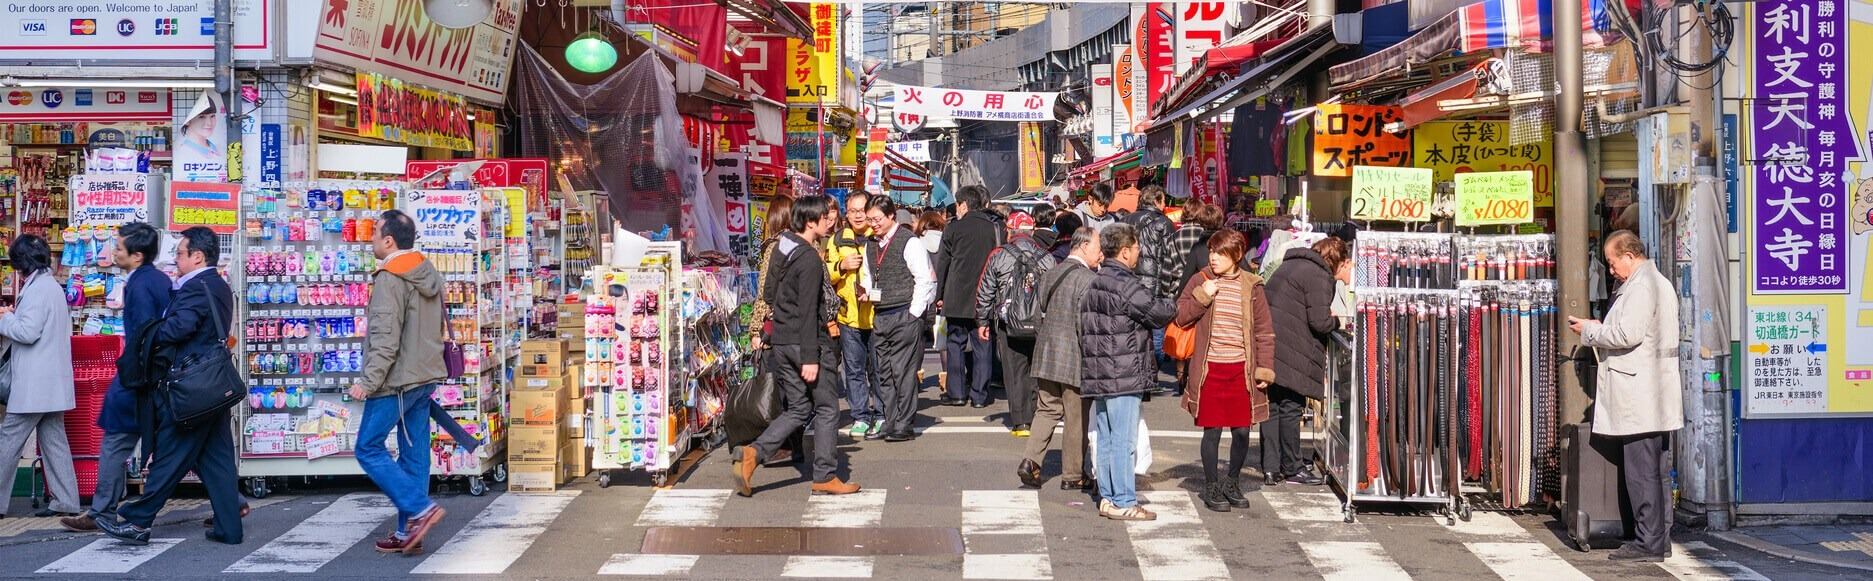 Tokyo, Japan Foreign Tourist Attractions Browse Ranking What is the most popular shopping street?